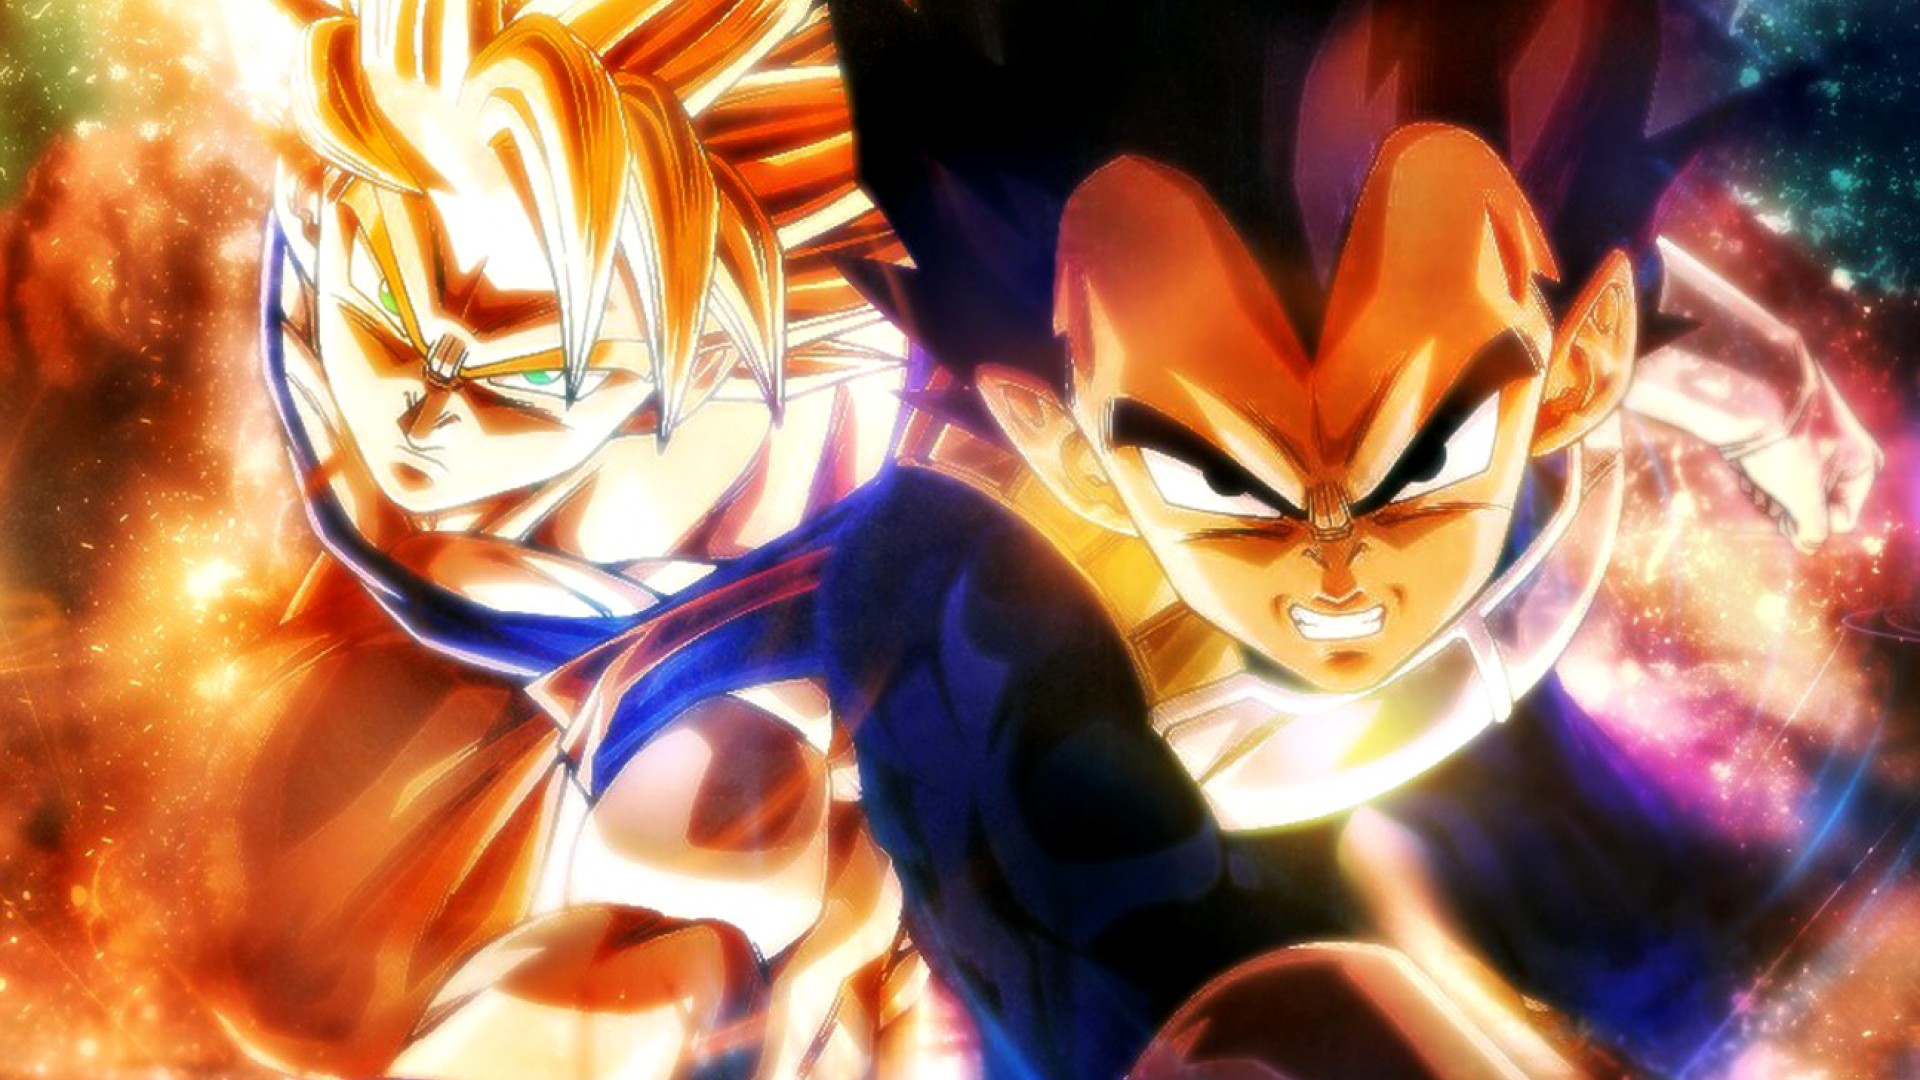 Dragon Ball Kid Goku Wallpaper Hd O Wallpaper Picture Photo 1920x1080